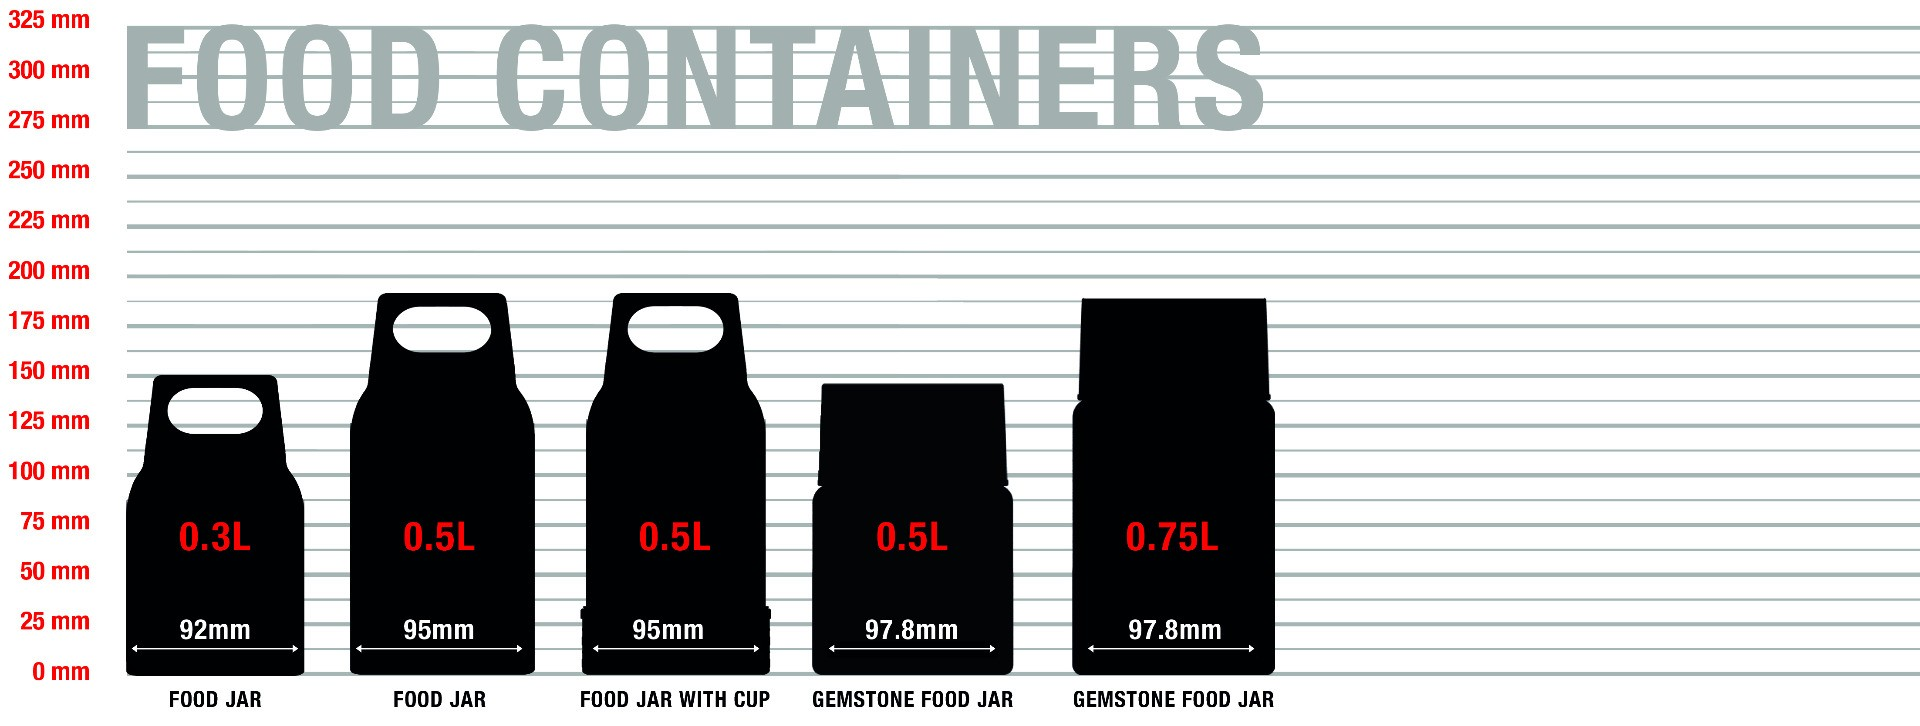 Food Jars sizes